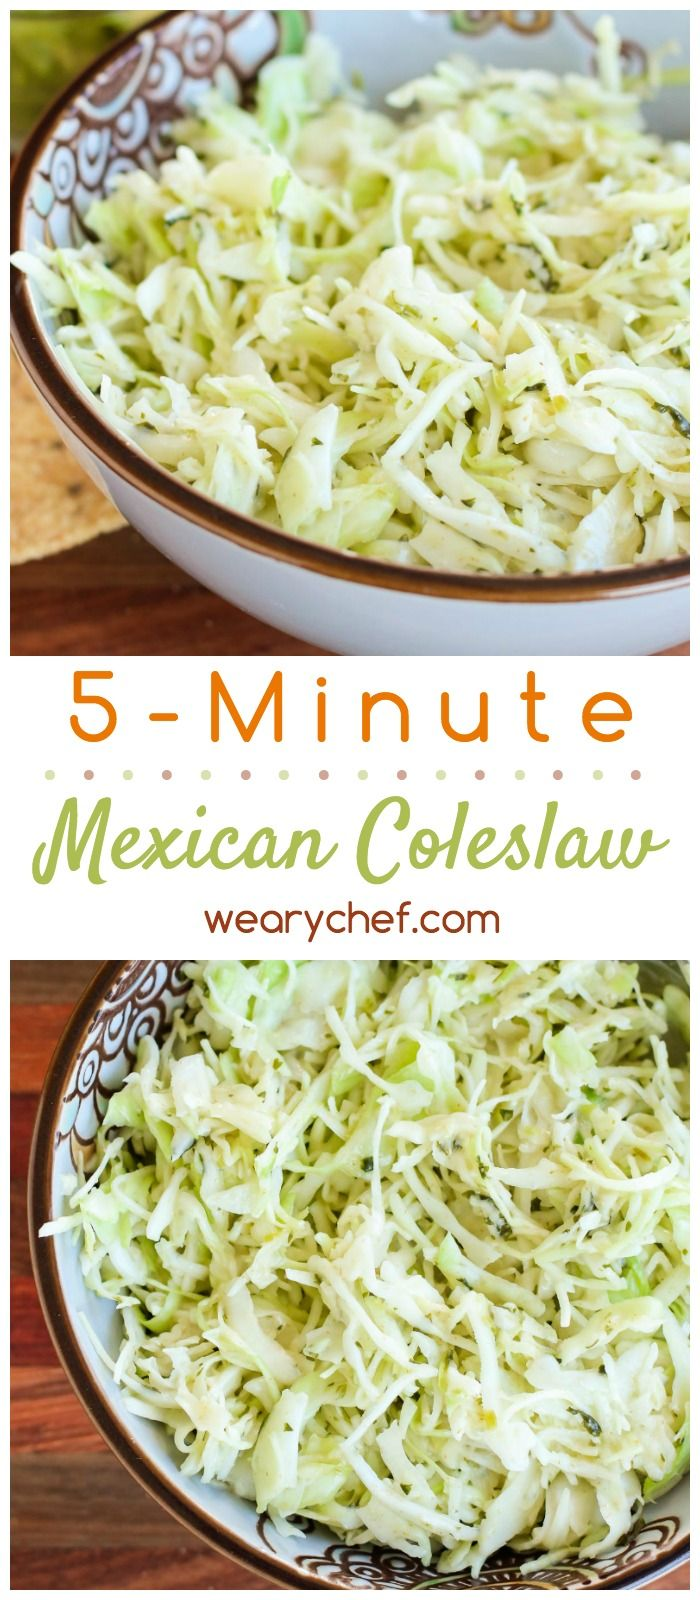 This easy Mexican coleslaw is a 5-minute side dish recipe perfect for dinner!